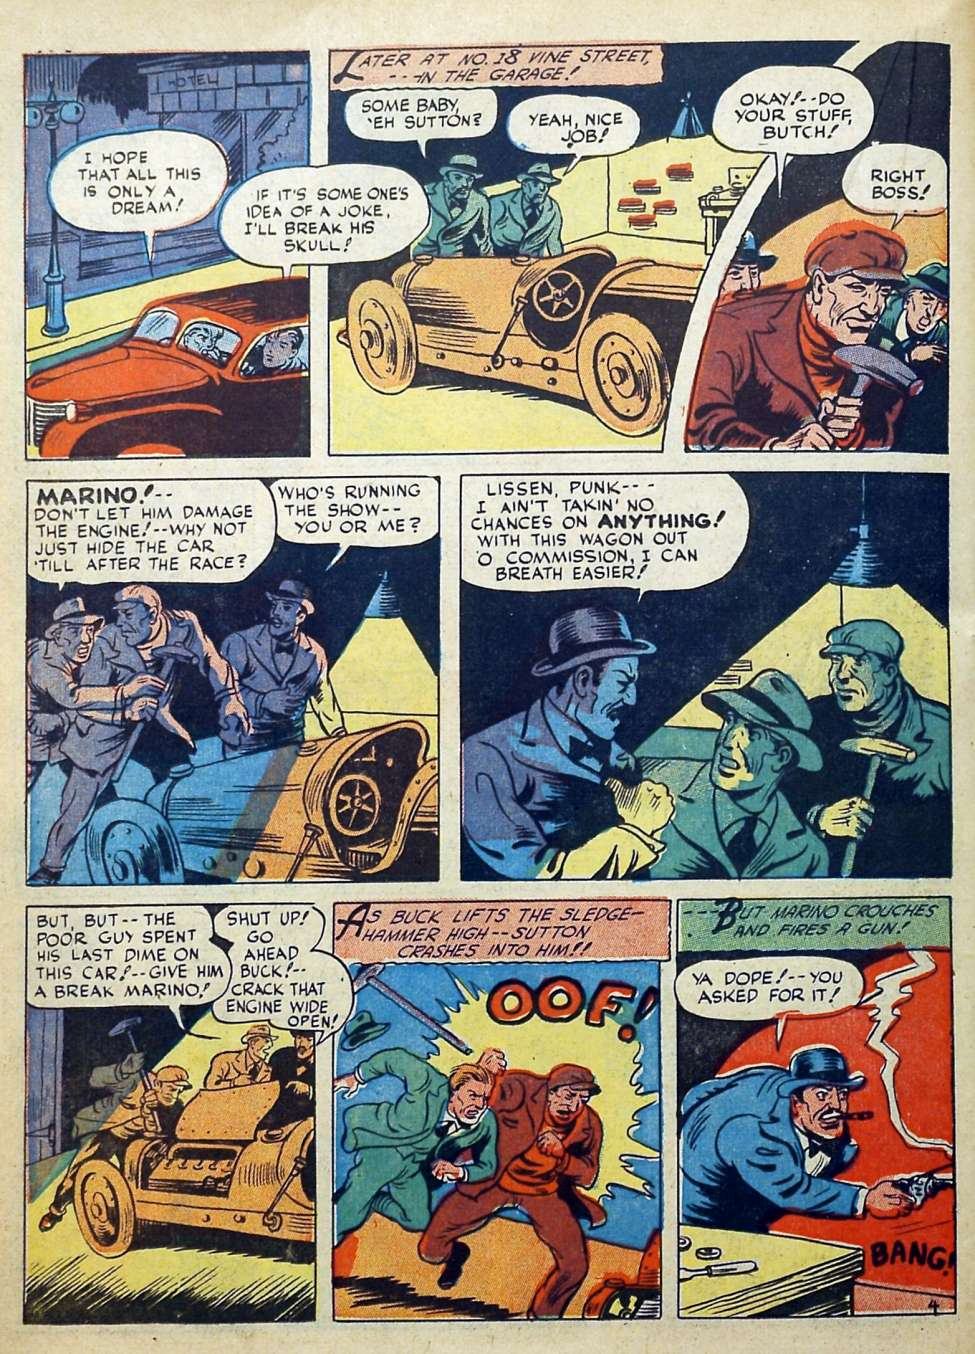 Suspense Comics #3 from 1944 34